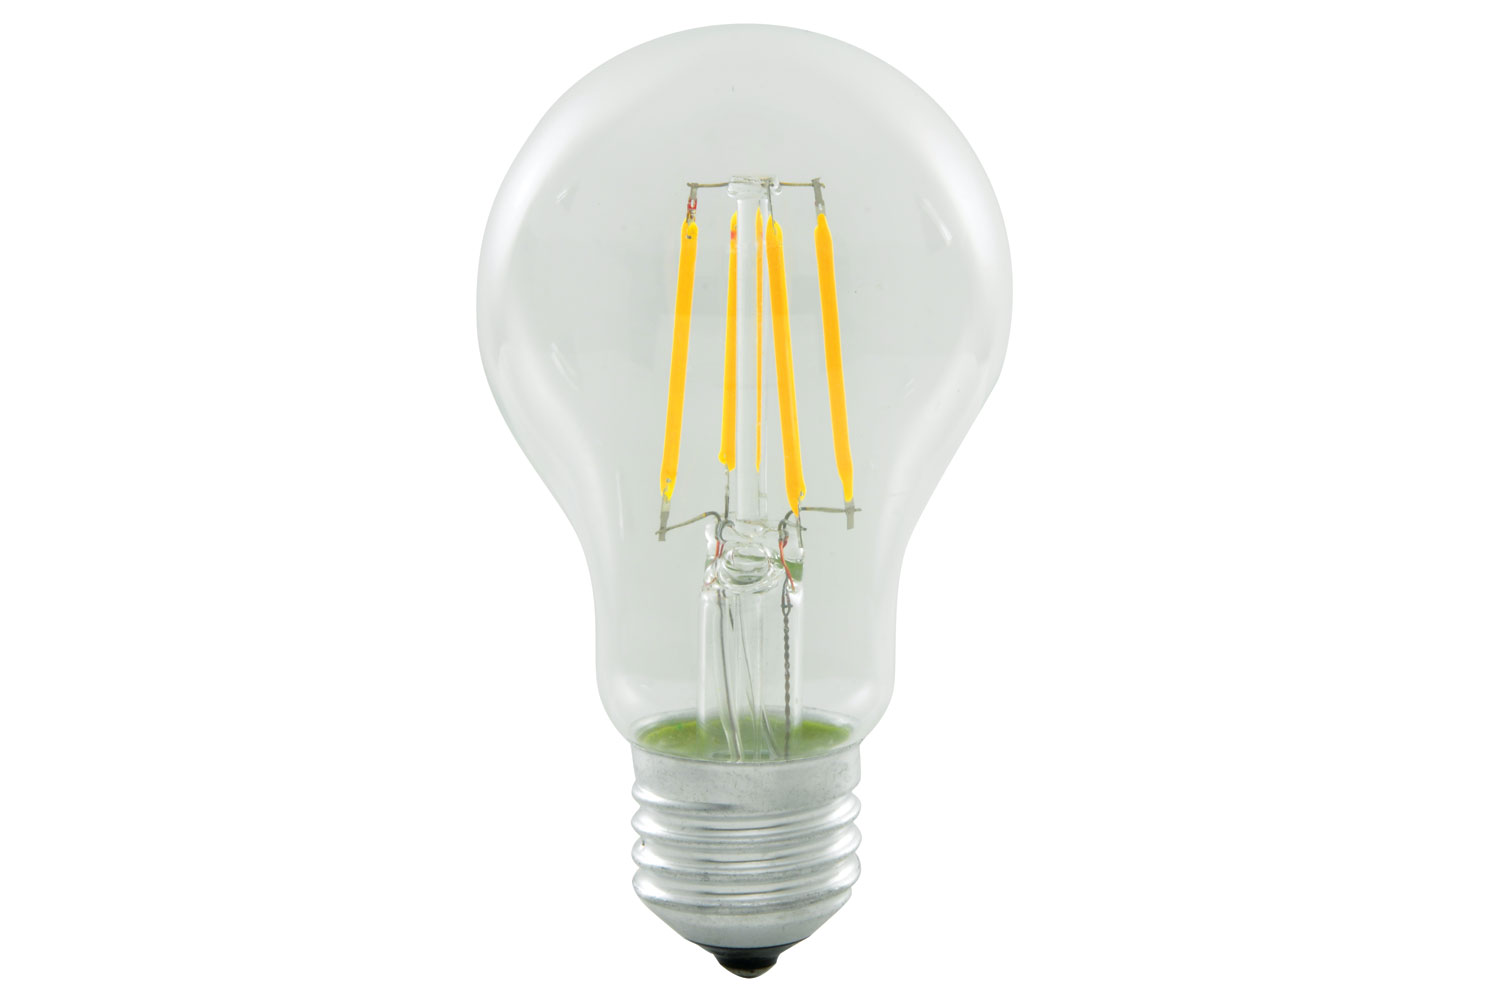 lyyt Standard GLS Filament Lamp 4W LED E27 WW